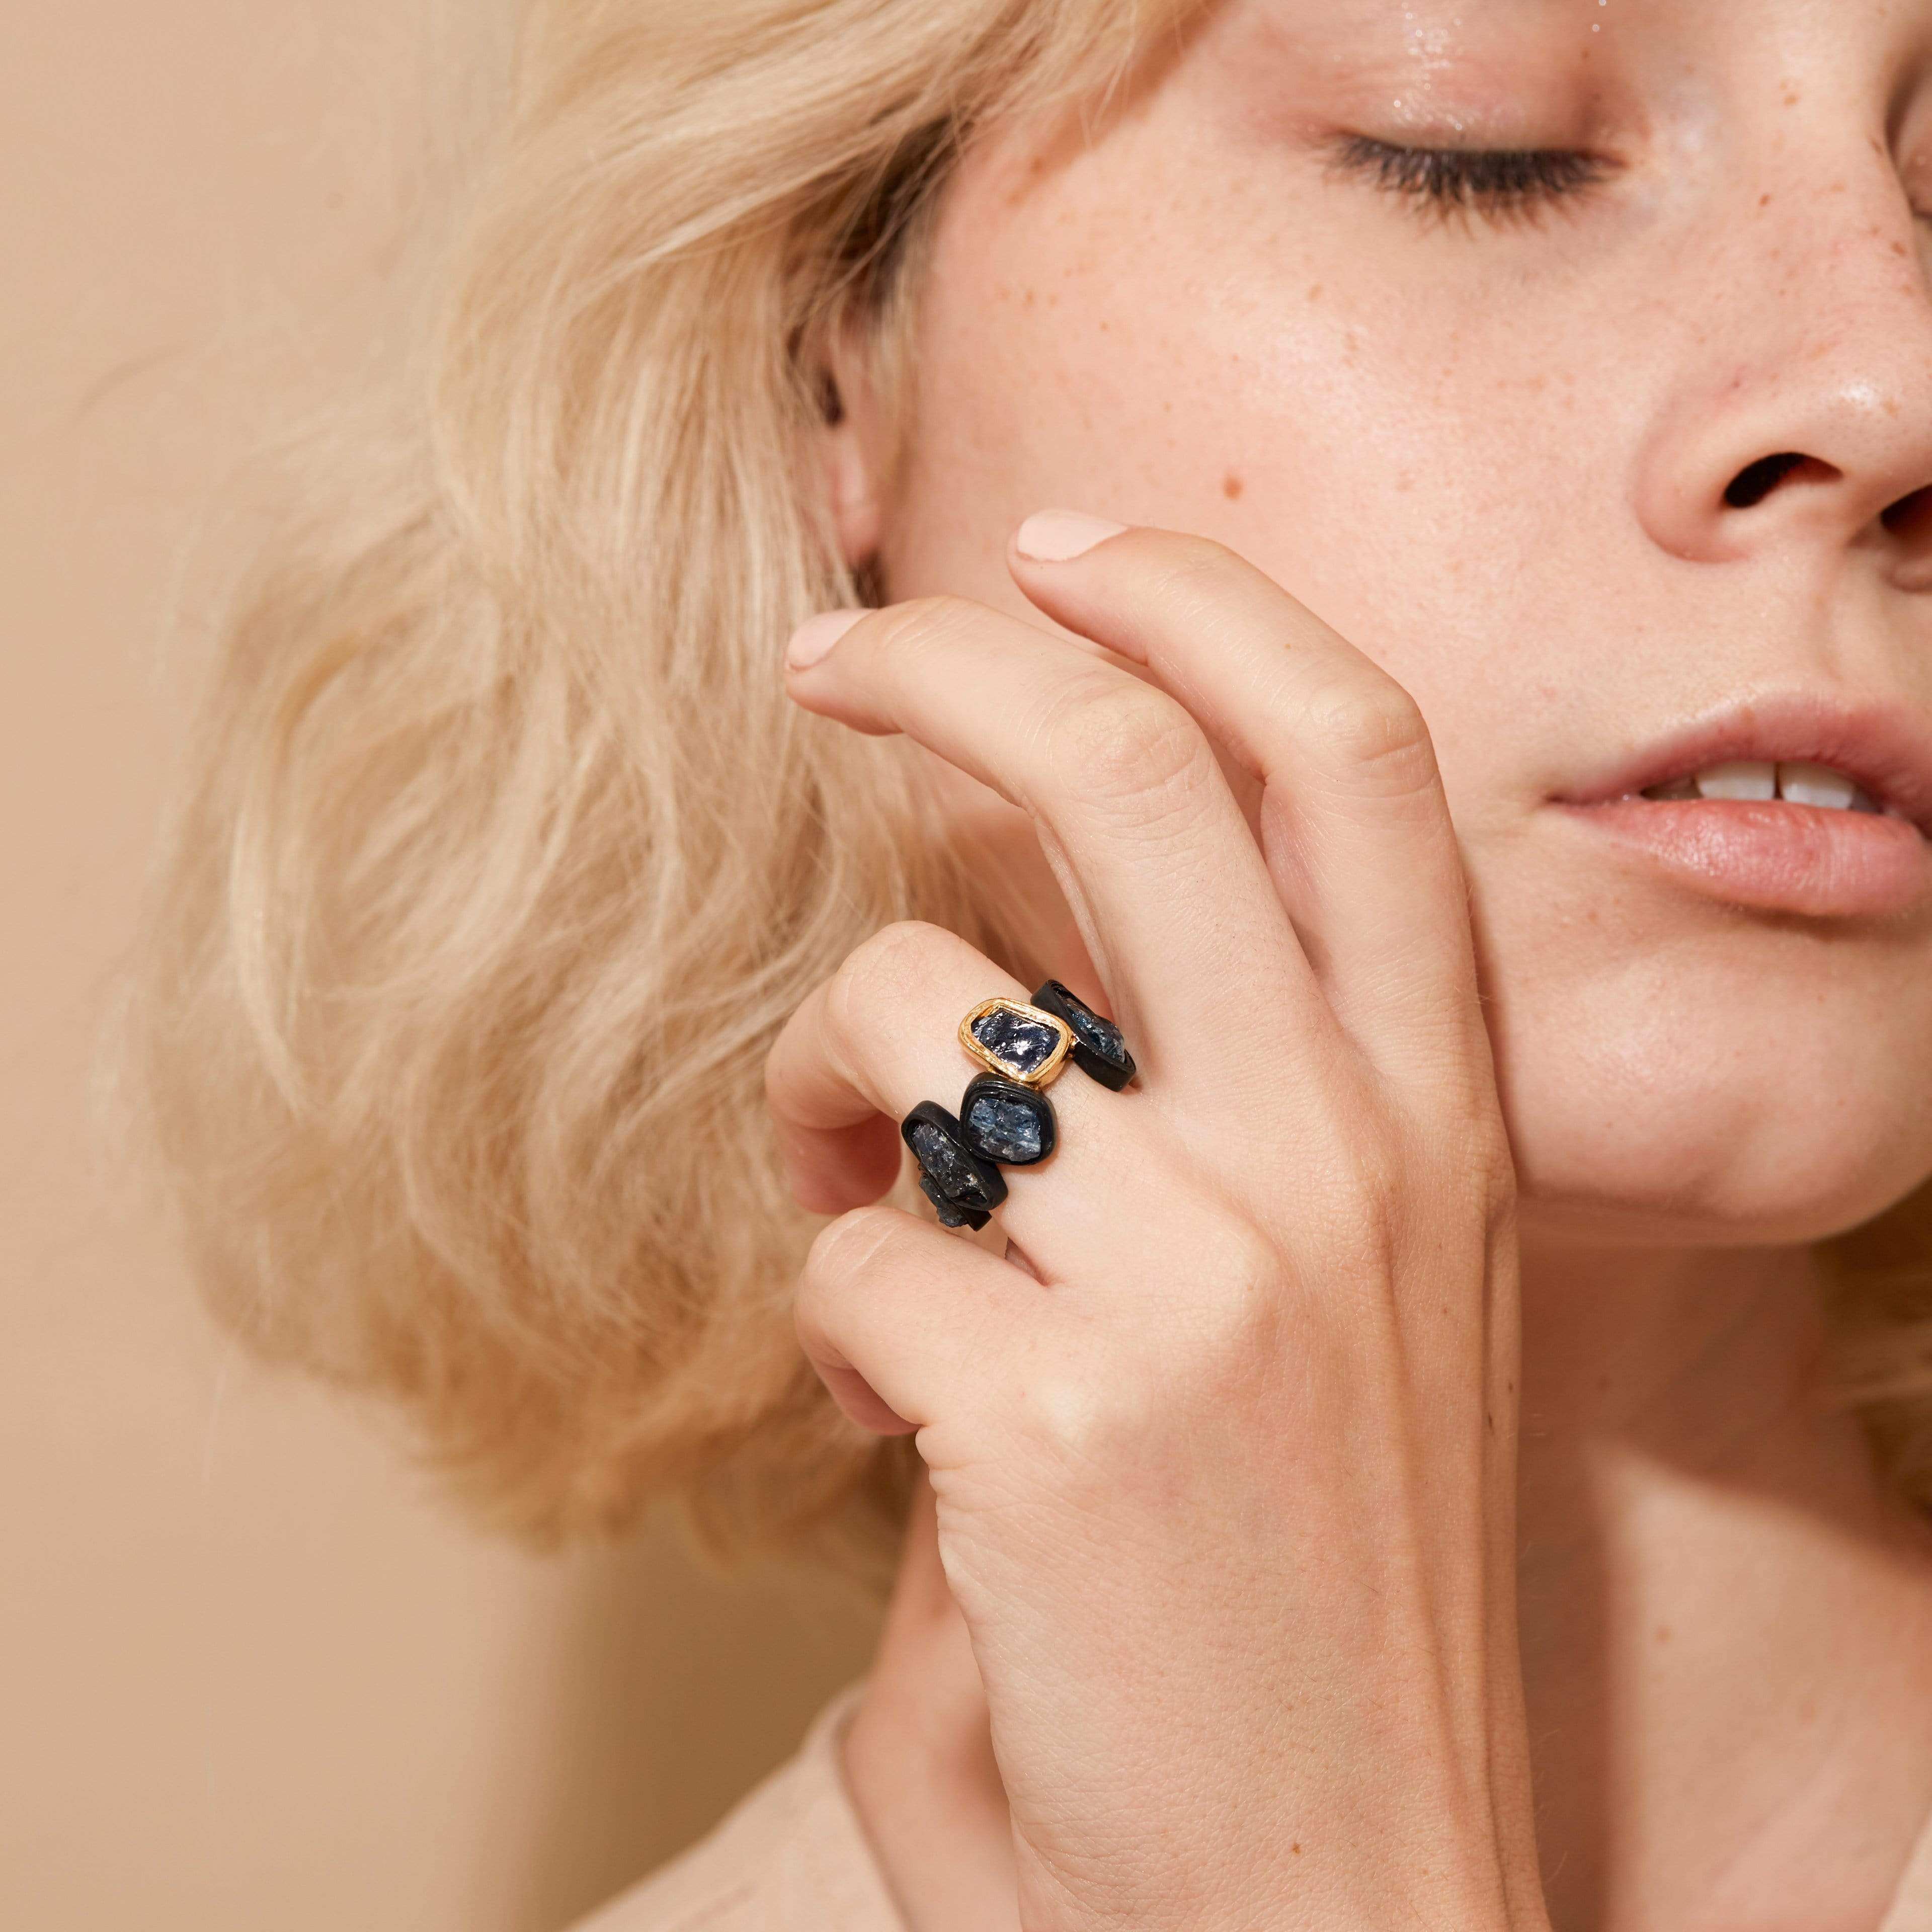 Orienta Ring, Anthracite, black, Gold, Handmade, Sapphire, spo-disabled, StoneColor:DeepBlue, Style:Everyday, Type:StoneCandyDelicate Ring